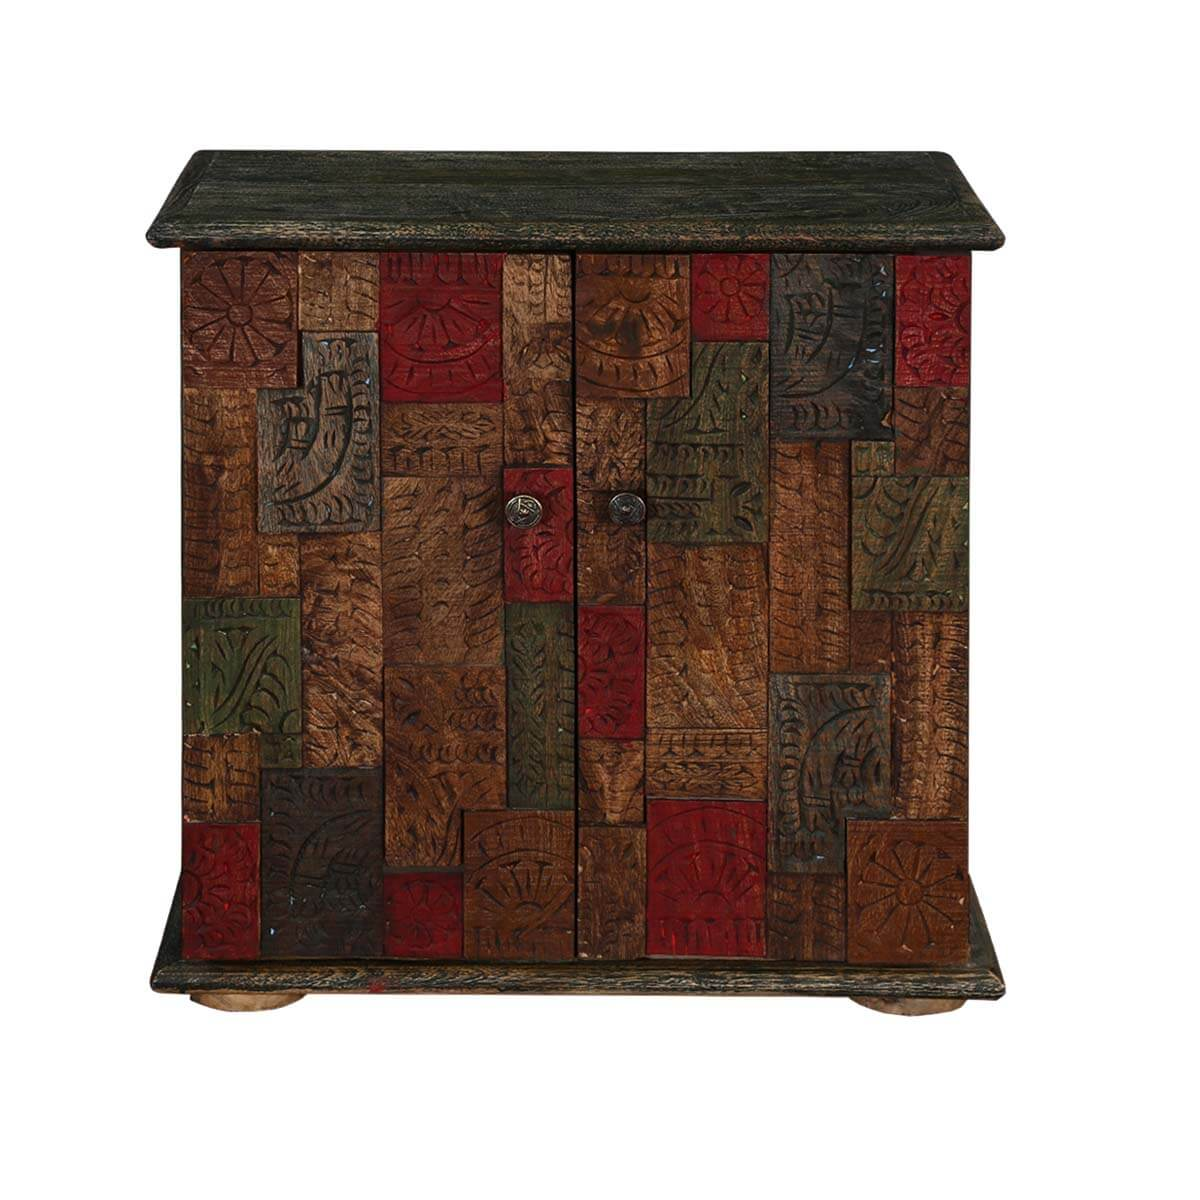 Explore More #703E22 Furniture Storage Cabinets Hand Carved Mosaic Acacia Wood  Multi Color With 1161